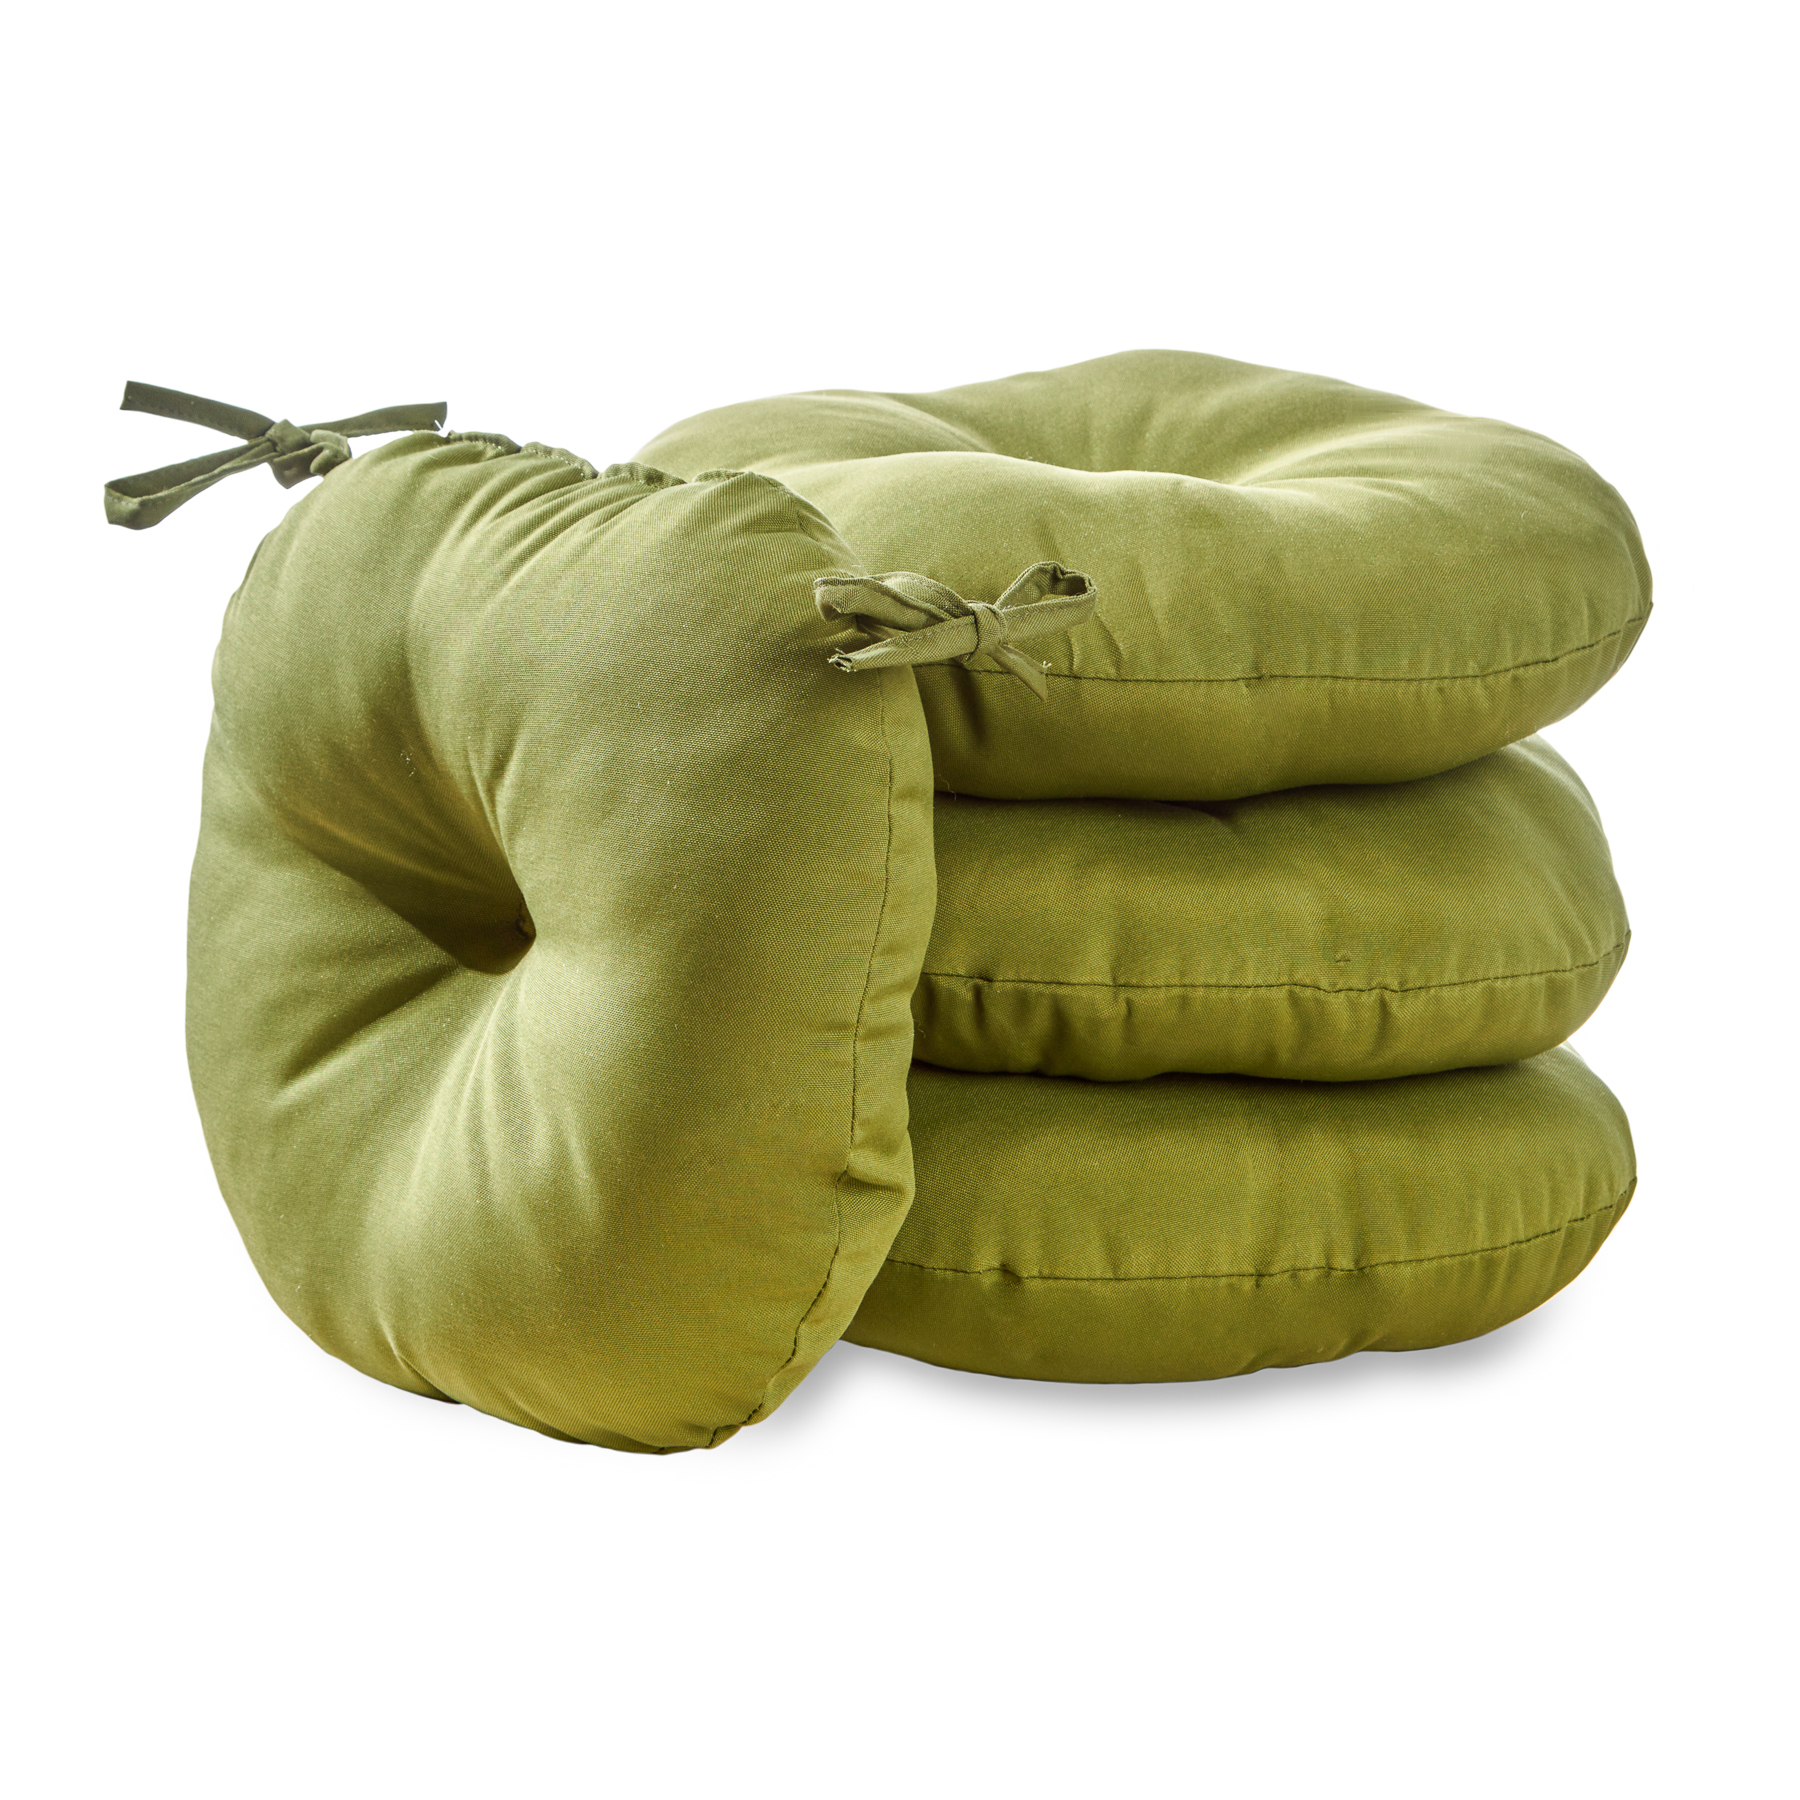 green chair cushions havana flair single person hammock swing greendale home fashions 15 quot round outdoor bistro